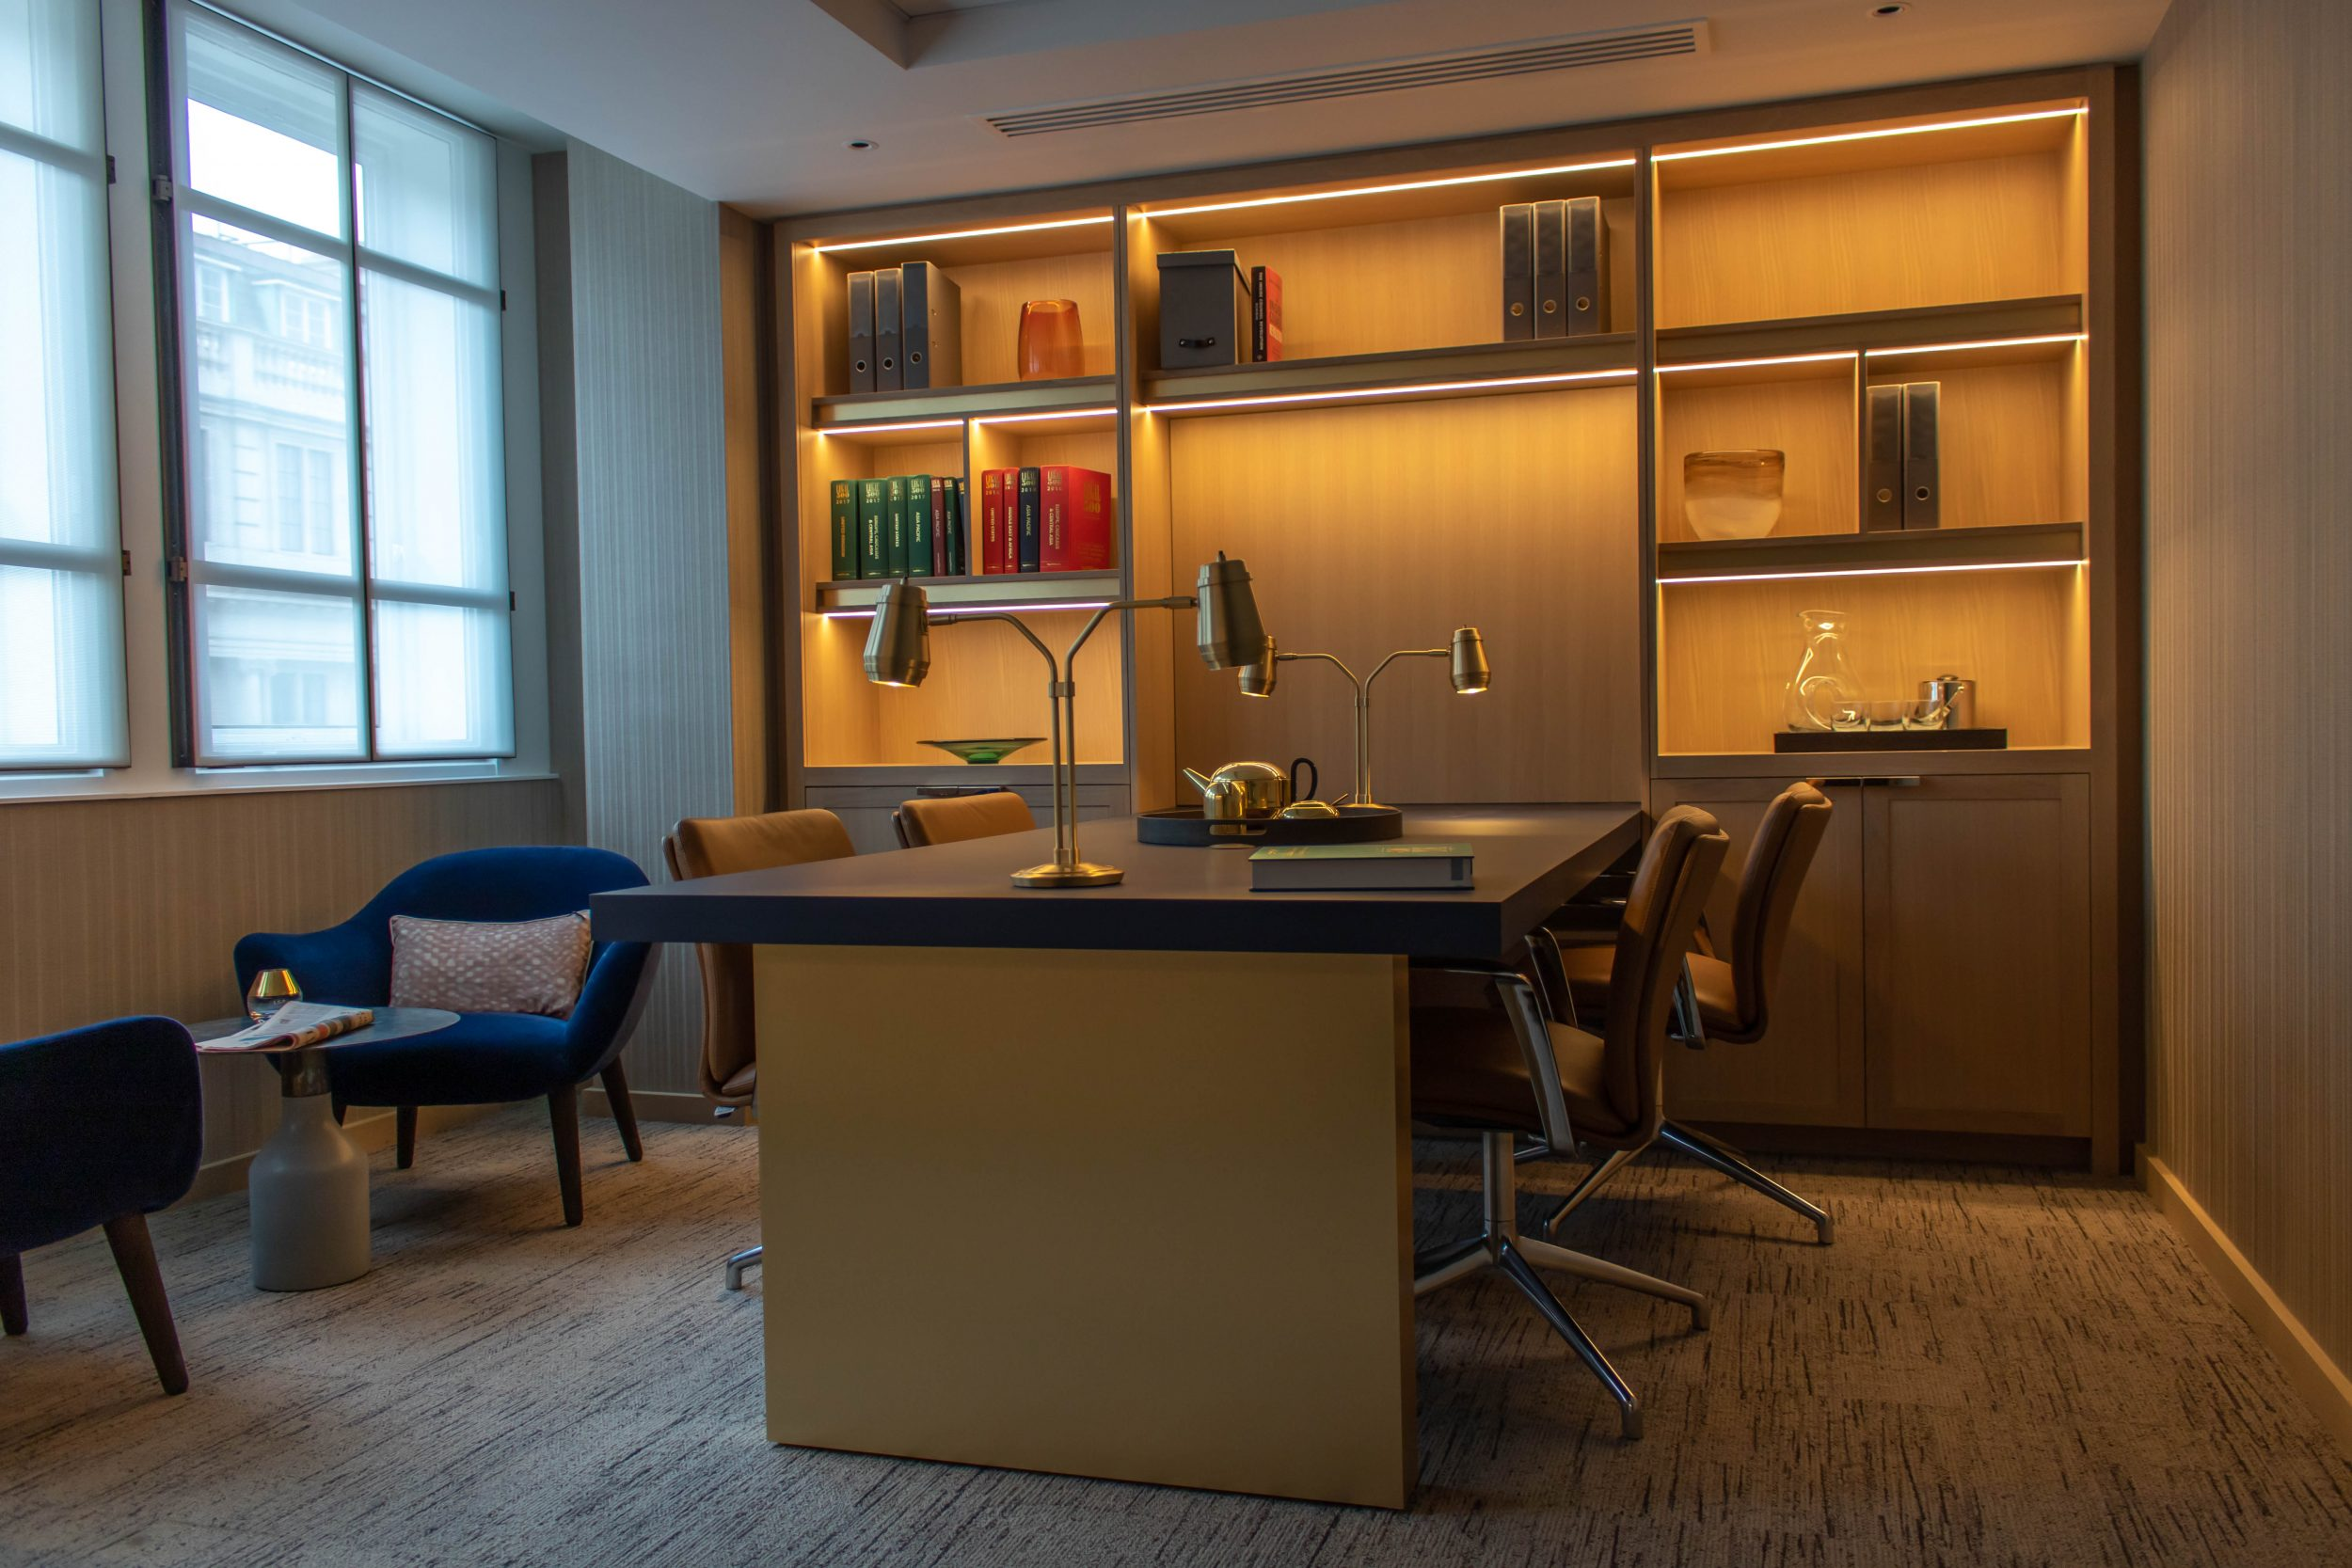 Kandd interior cabinetry